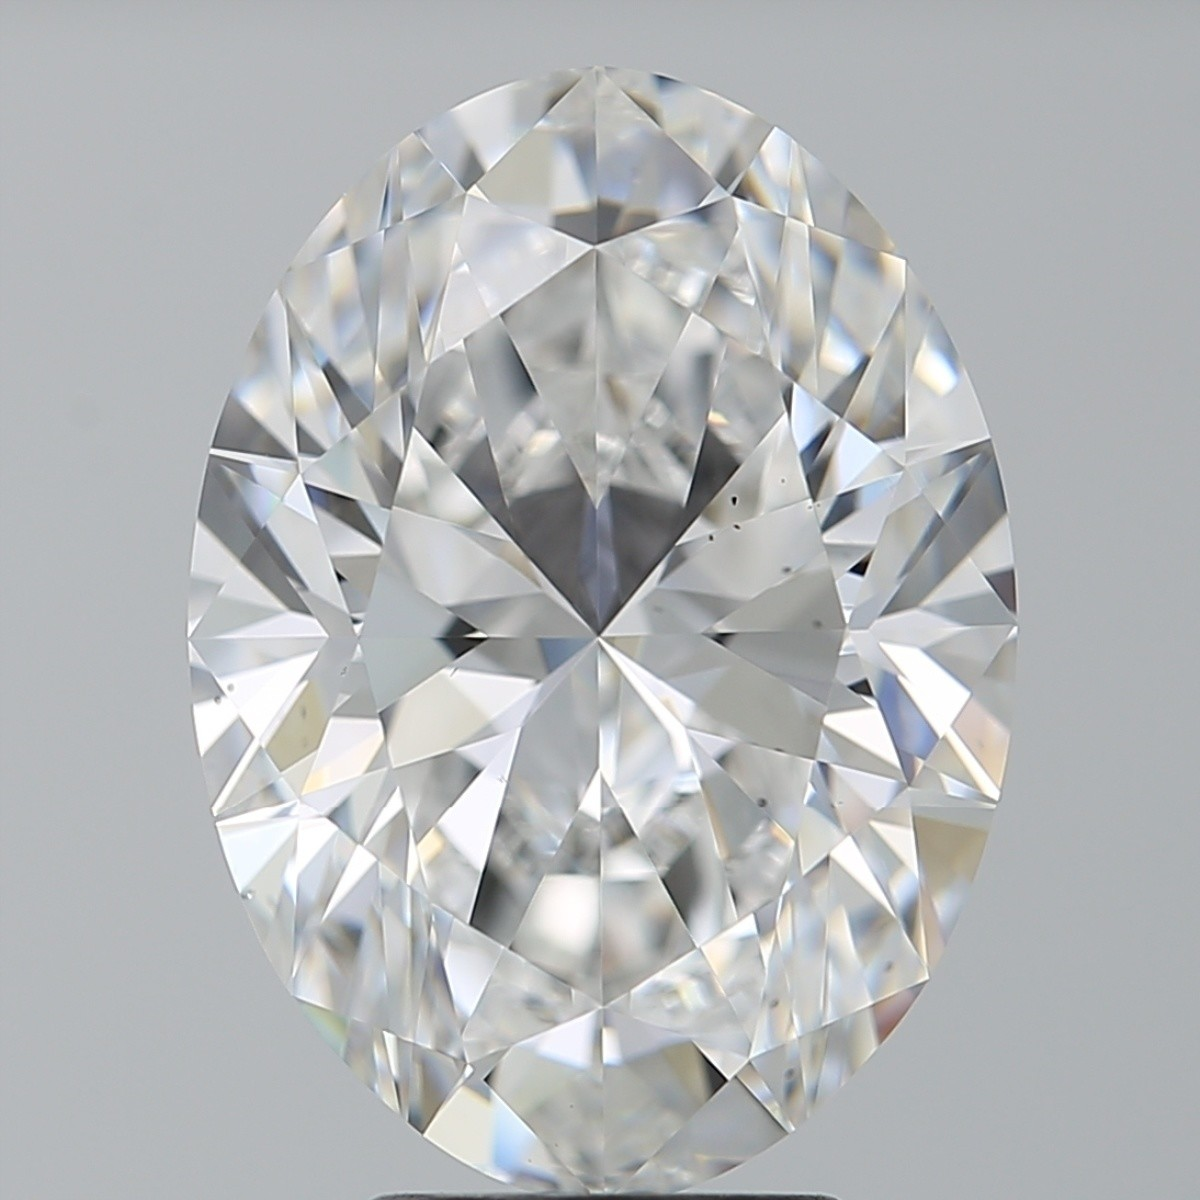 5.03 Carat Oval Diamond (E/VS2)